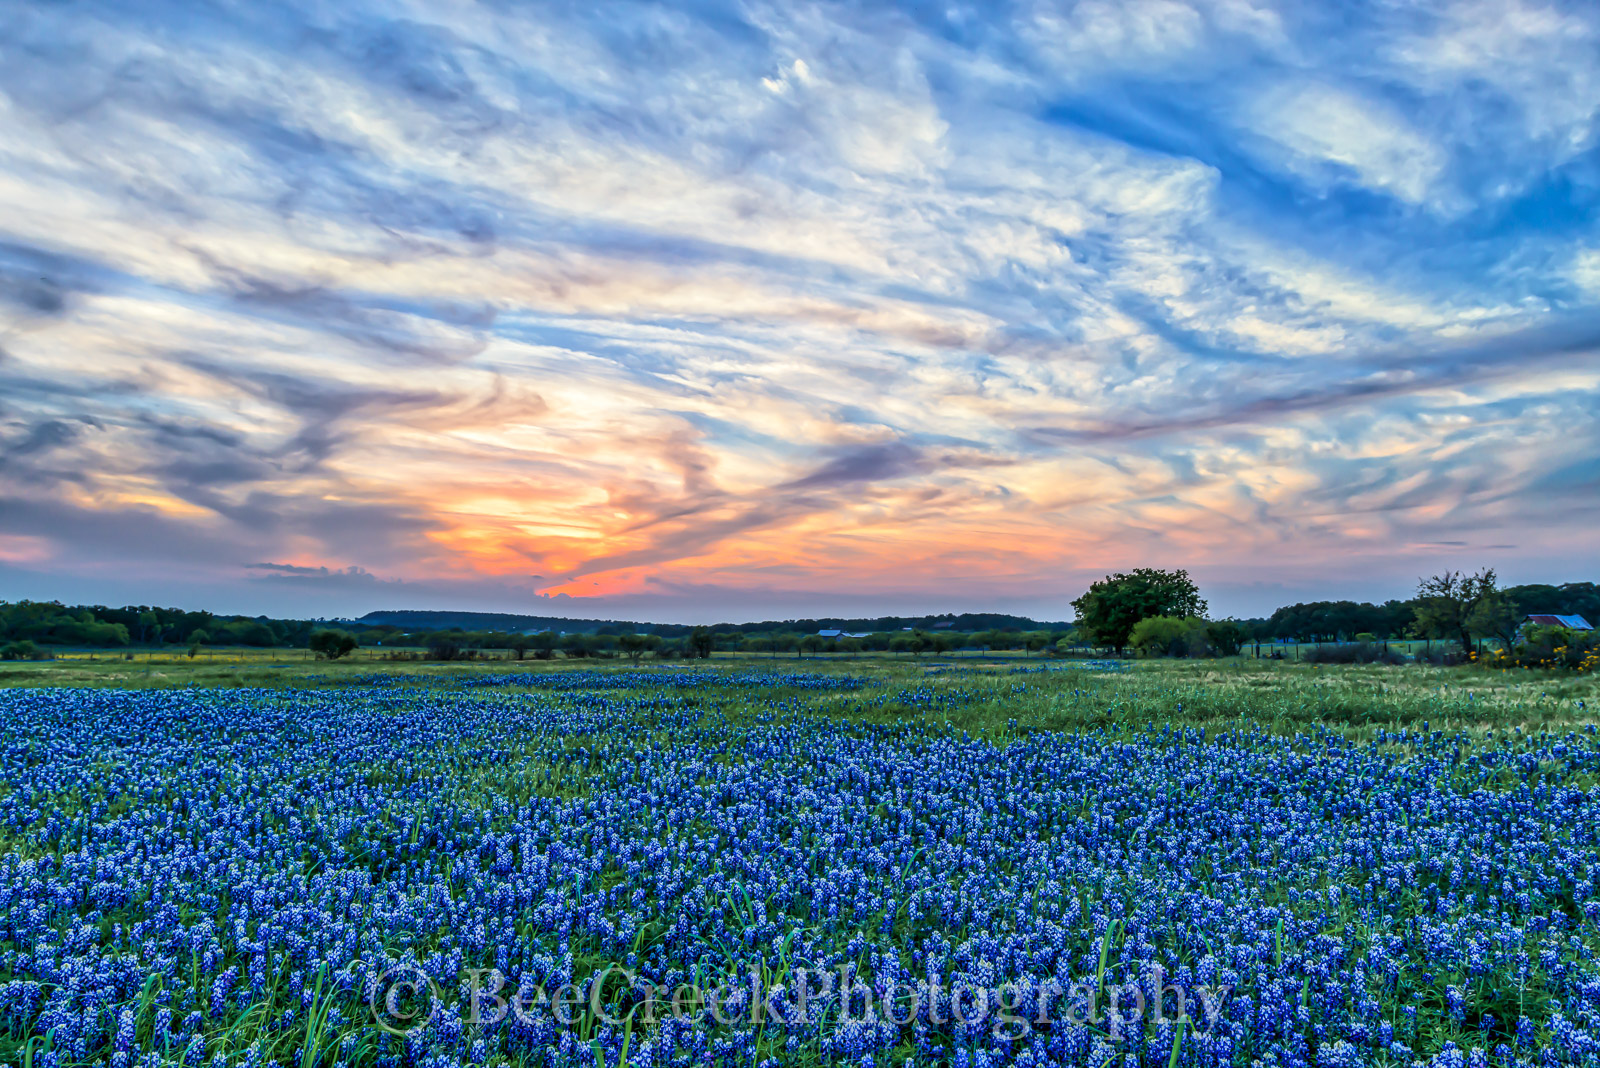 bluebonnets, hill country, texas, sunset, glow, clouds, sky, colorful, awesome, blue coloful, landscape, rural landscape, old farm house, PEC office,